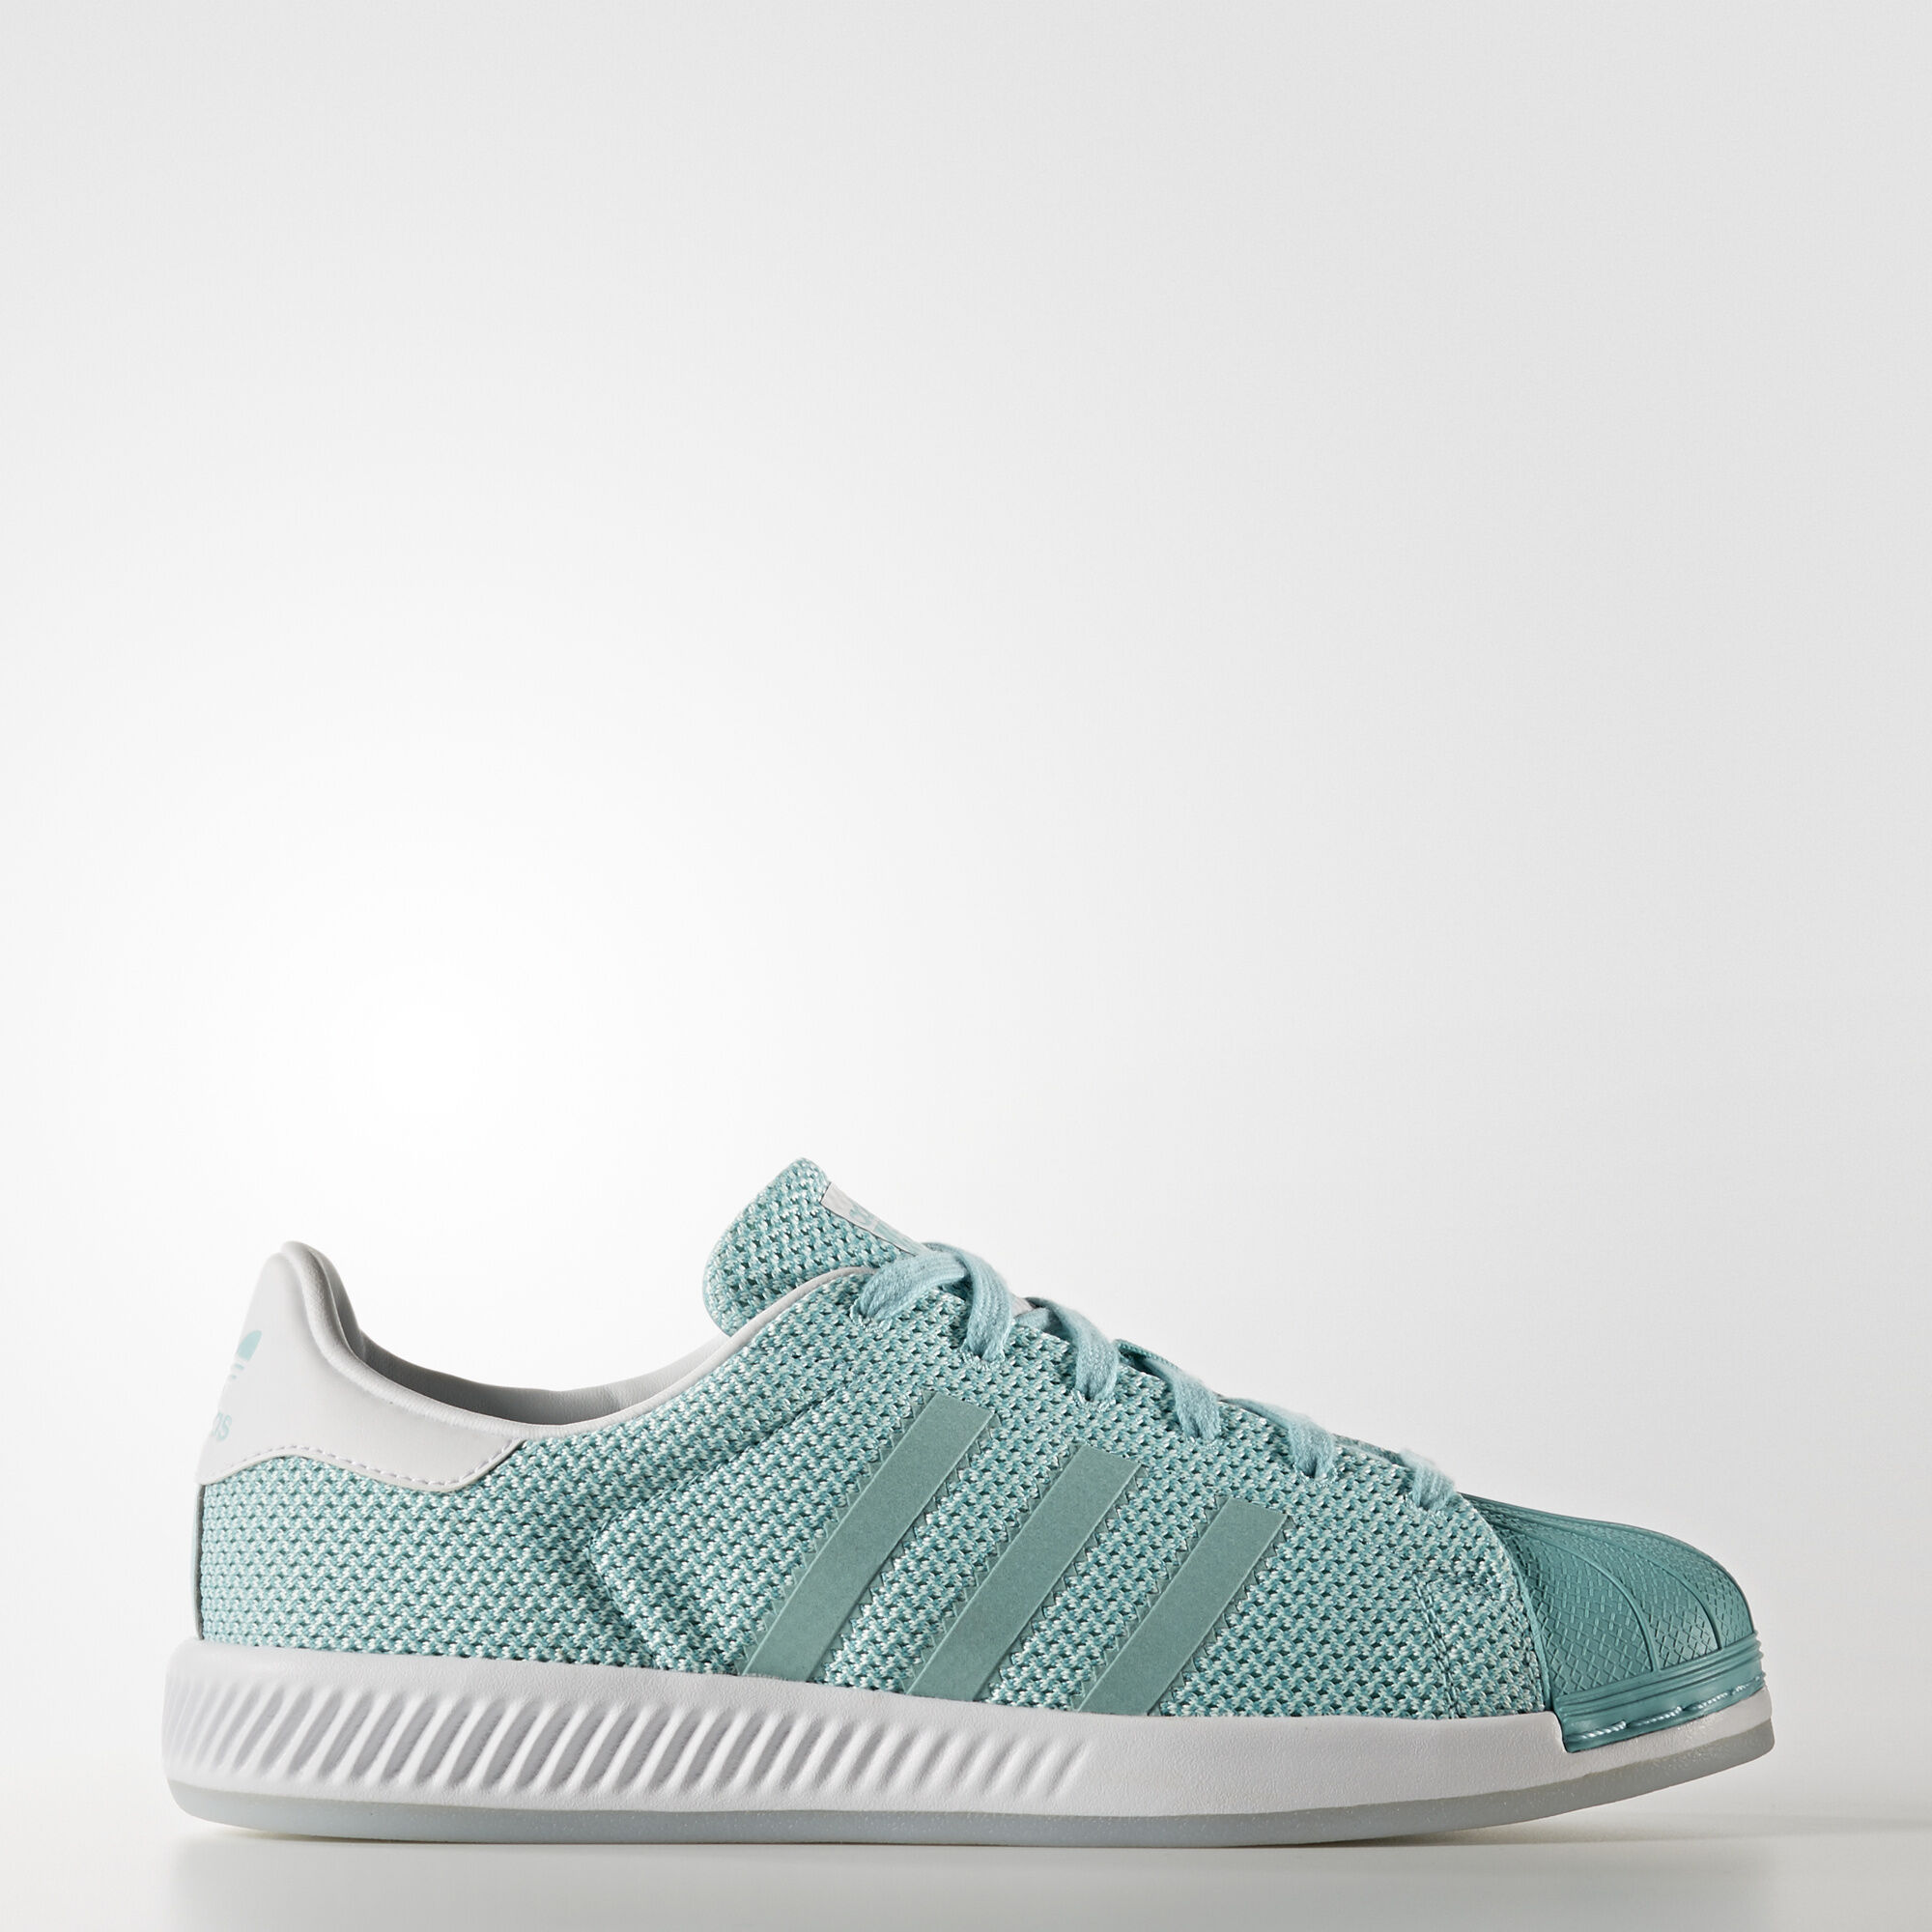 Adidas Superstar Womens Metallic